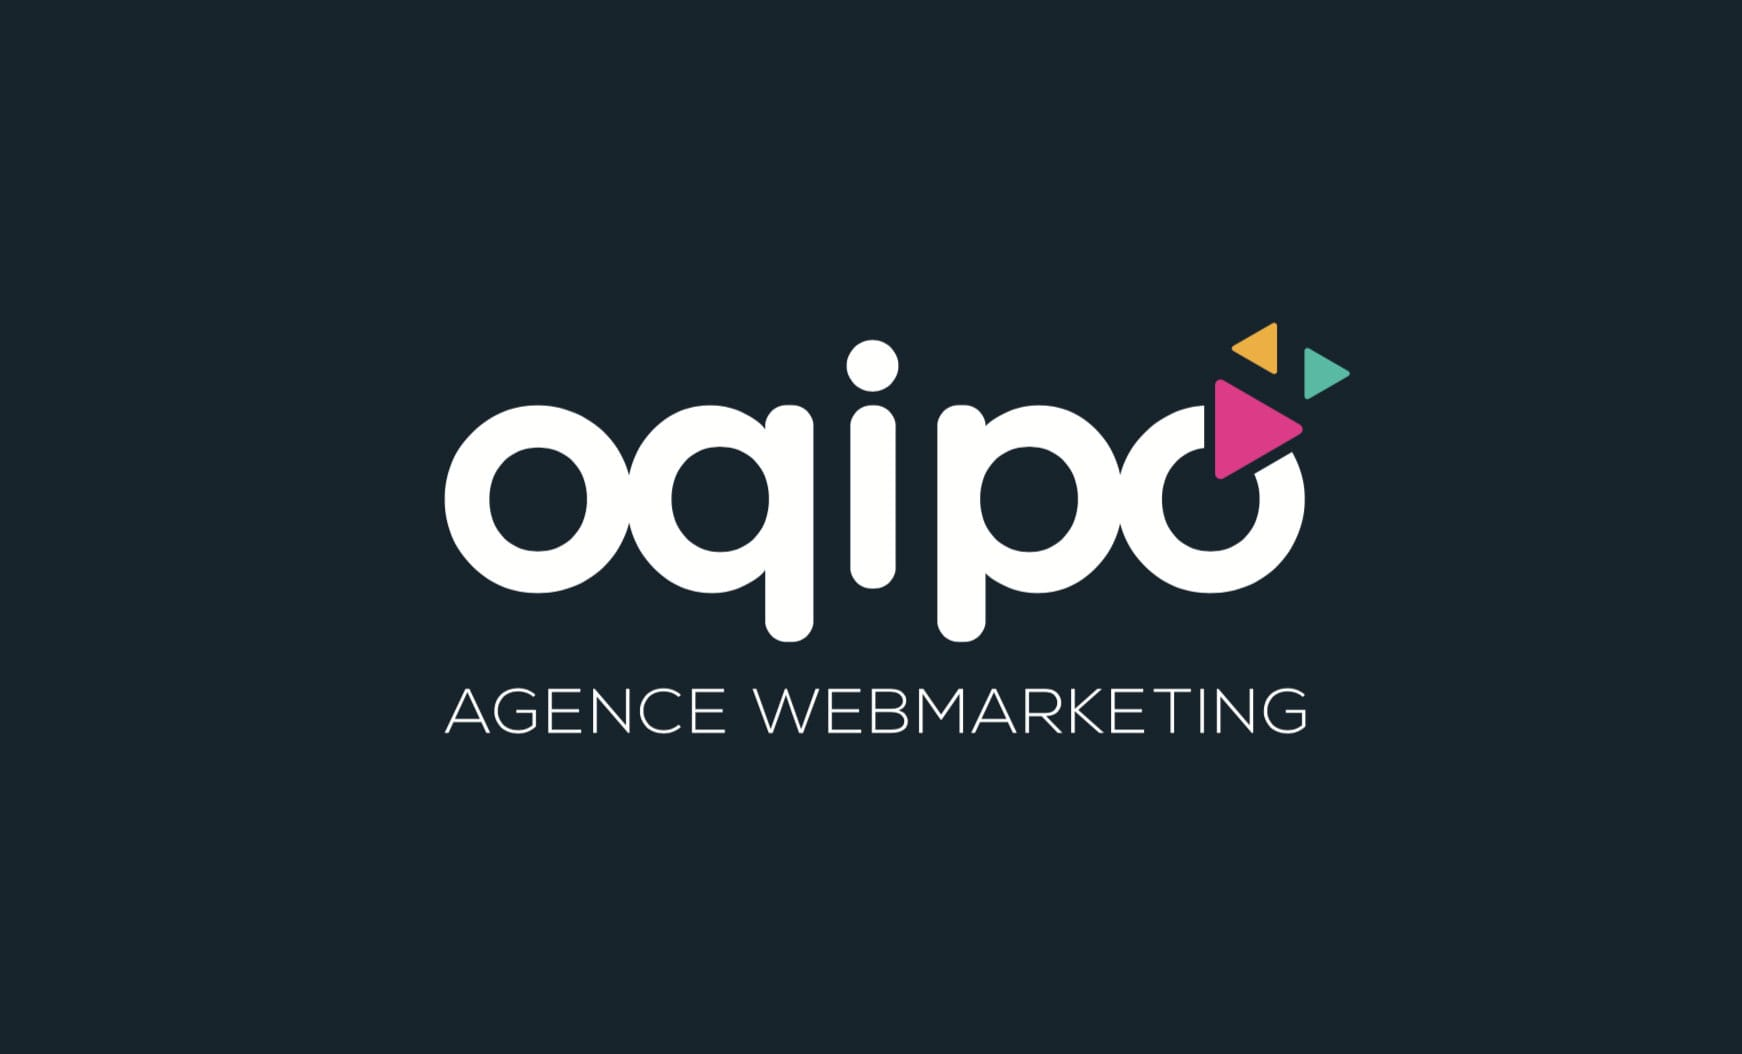 oqipo agence webmarketing montpellier